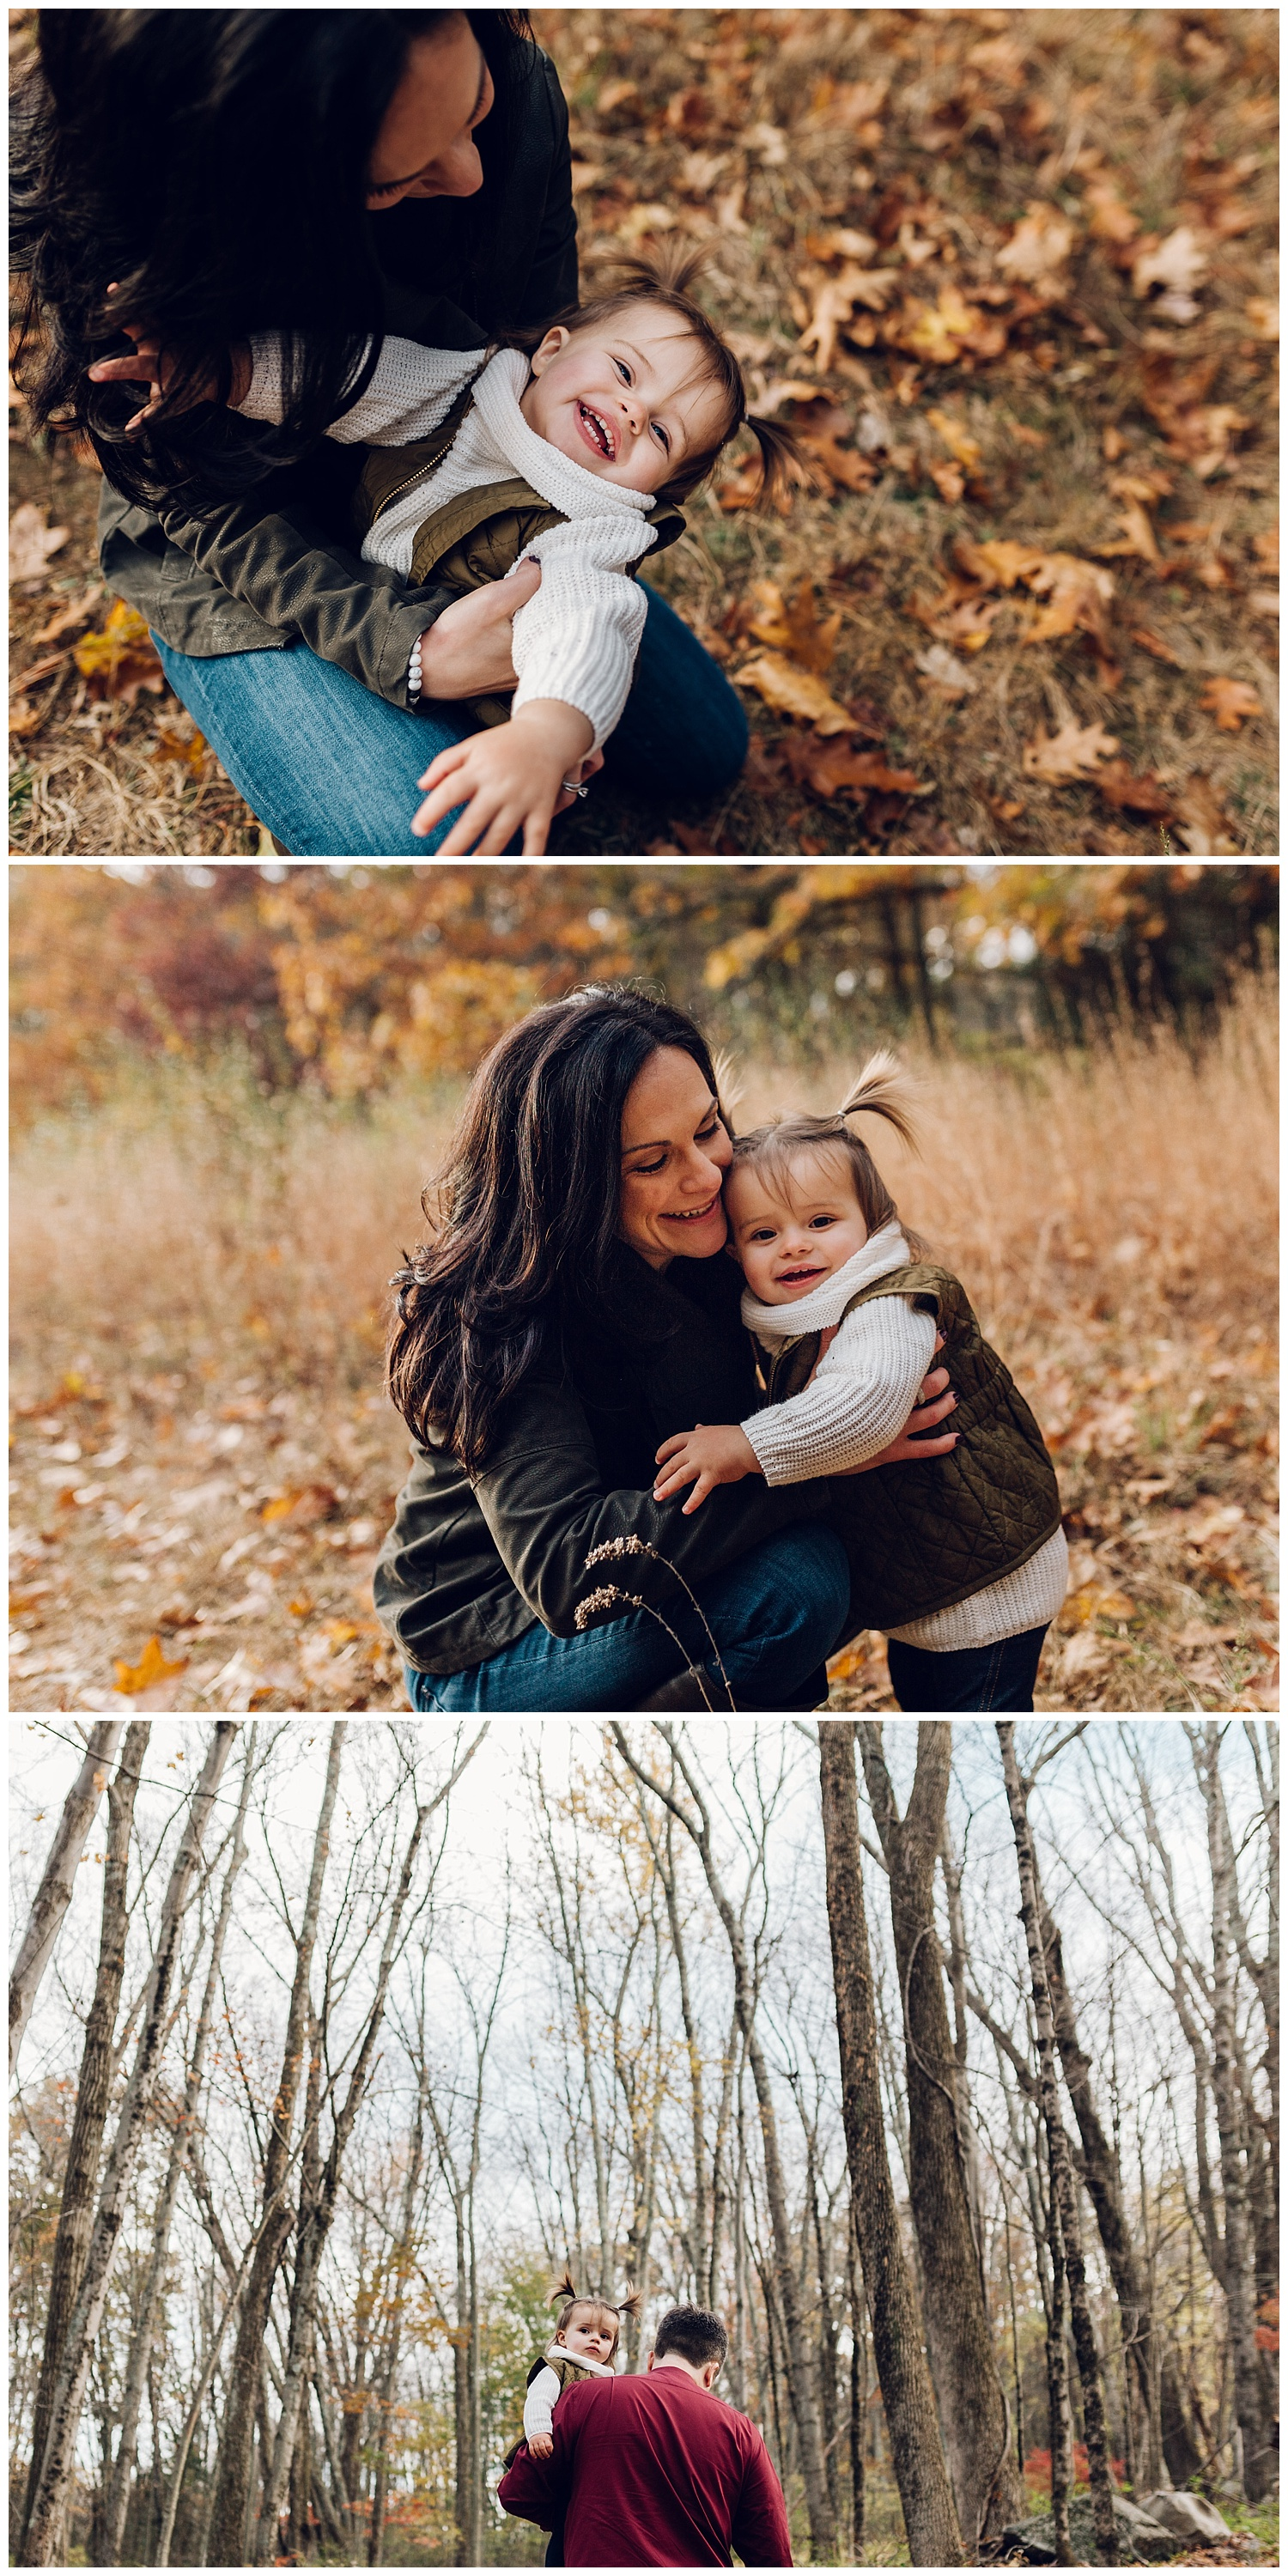 giggles by laura barr photography